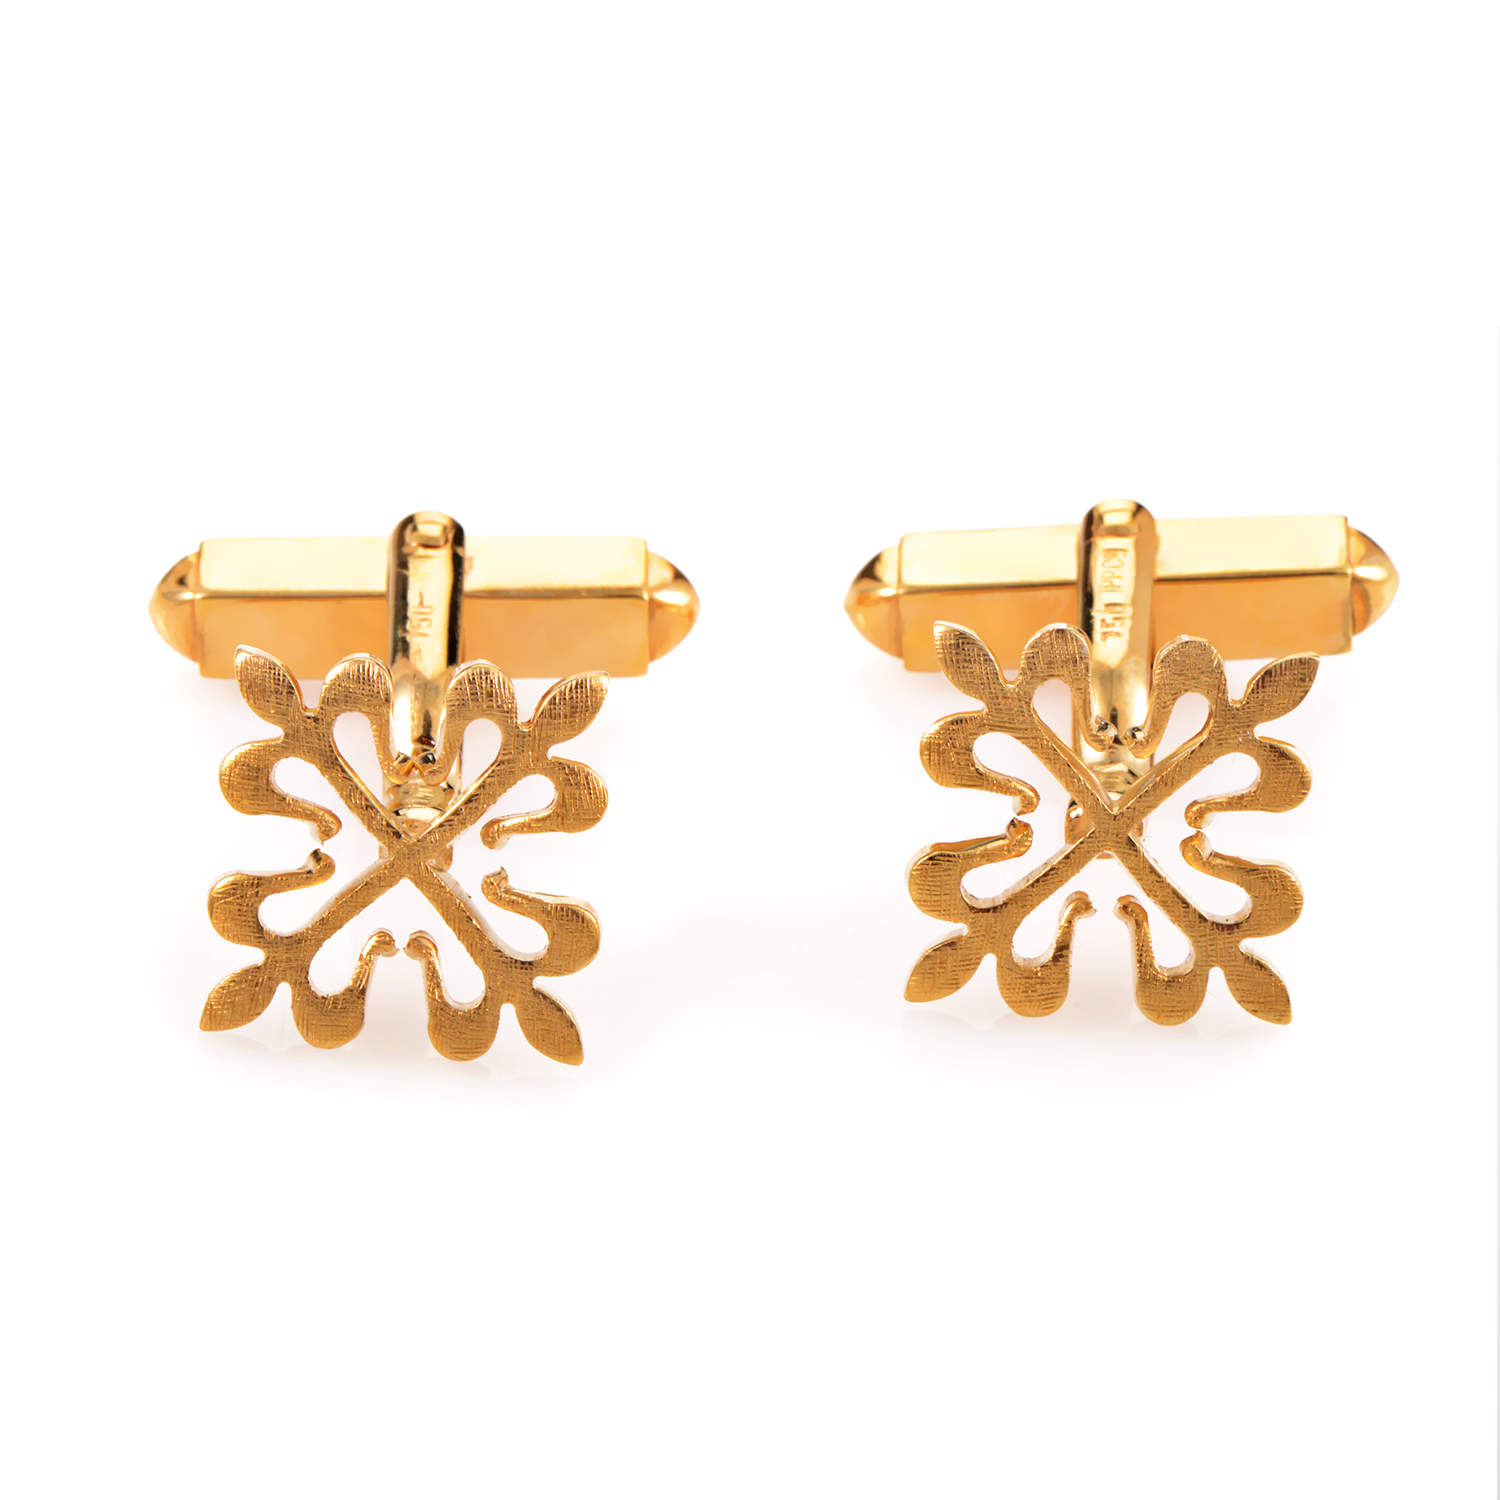 Patek Philippe Calatrava 18K Yellow Gold Cufflinks